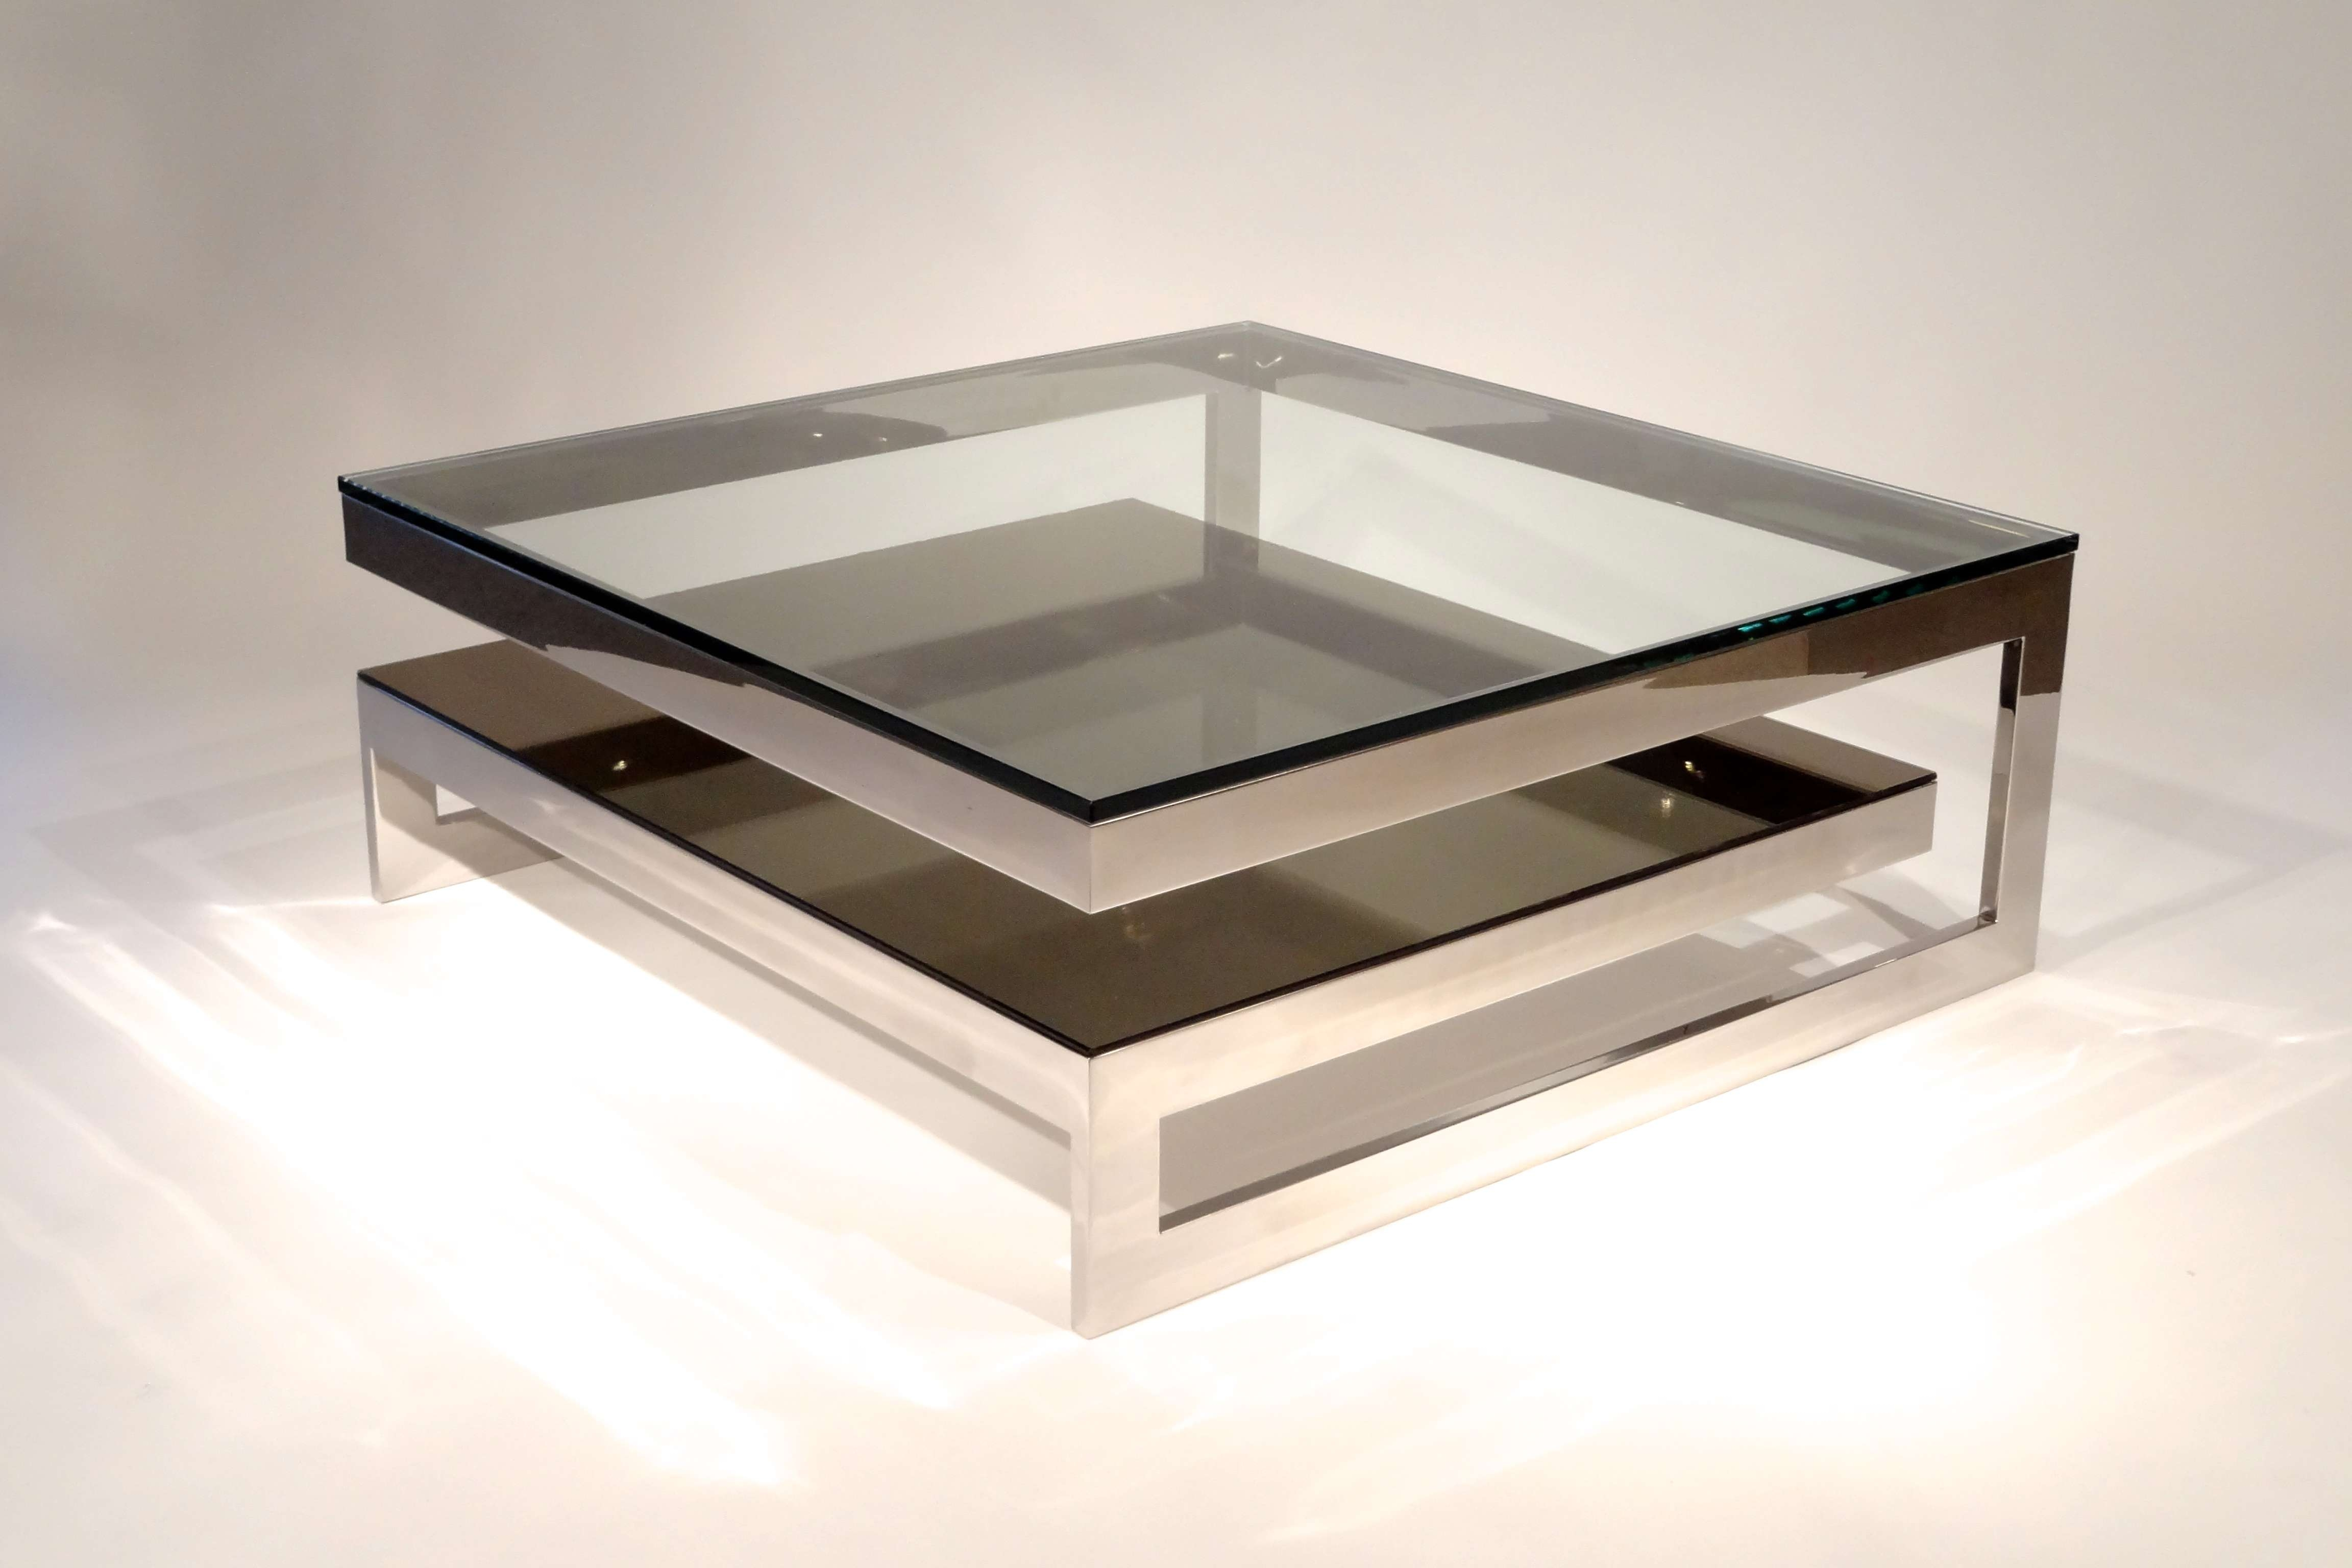 Trendy Modern Coffee Table Throughout Interior : Rustic Wood Coffee Table Sfr Cen Tres Amigos Decobizz (View 10 of 20)